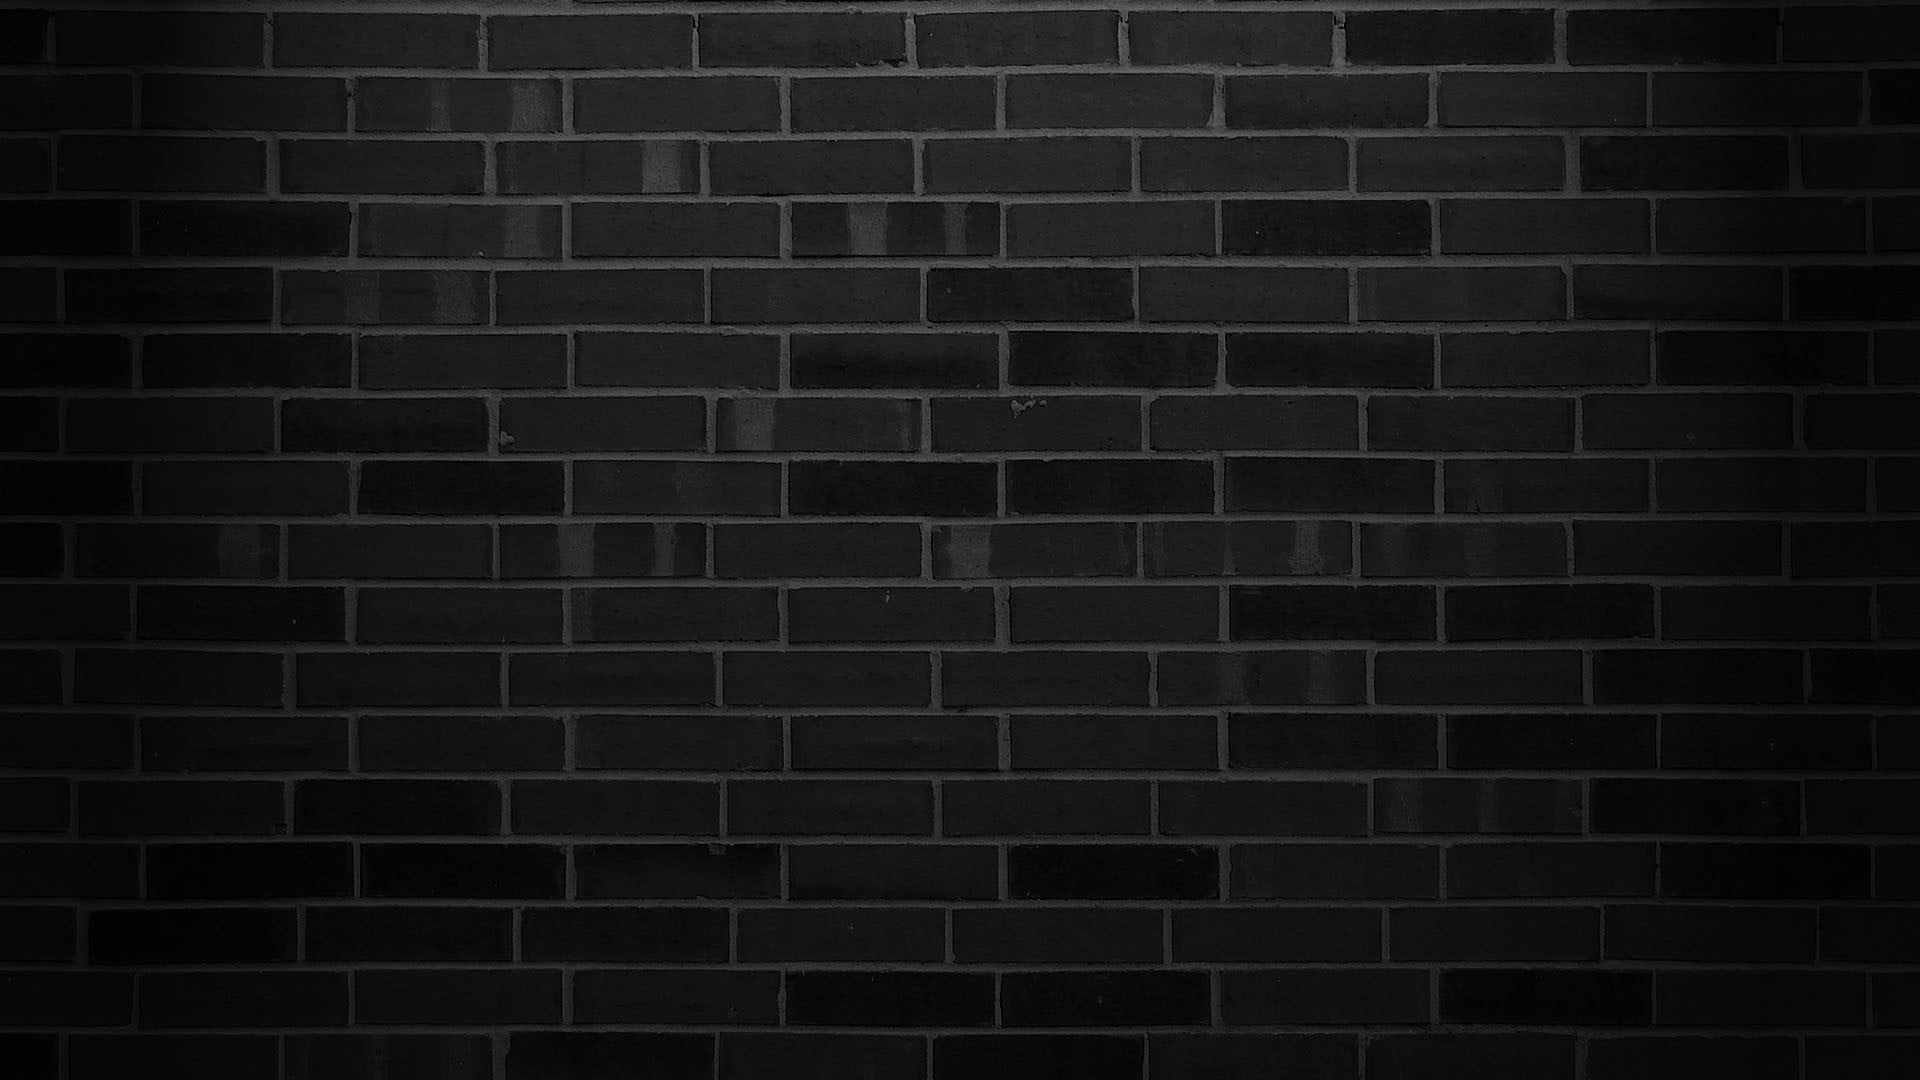 grayscale brick wall wallpaper minimalism pattern